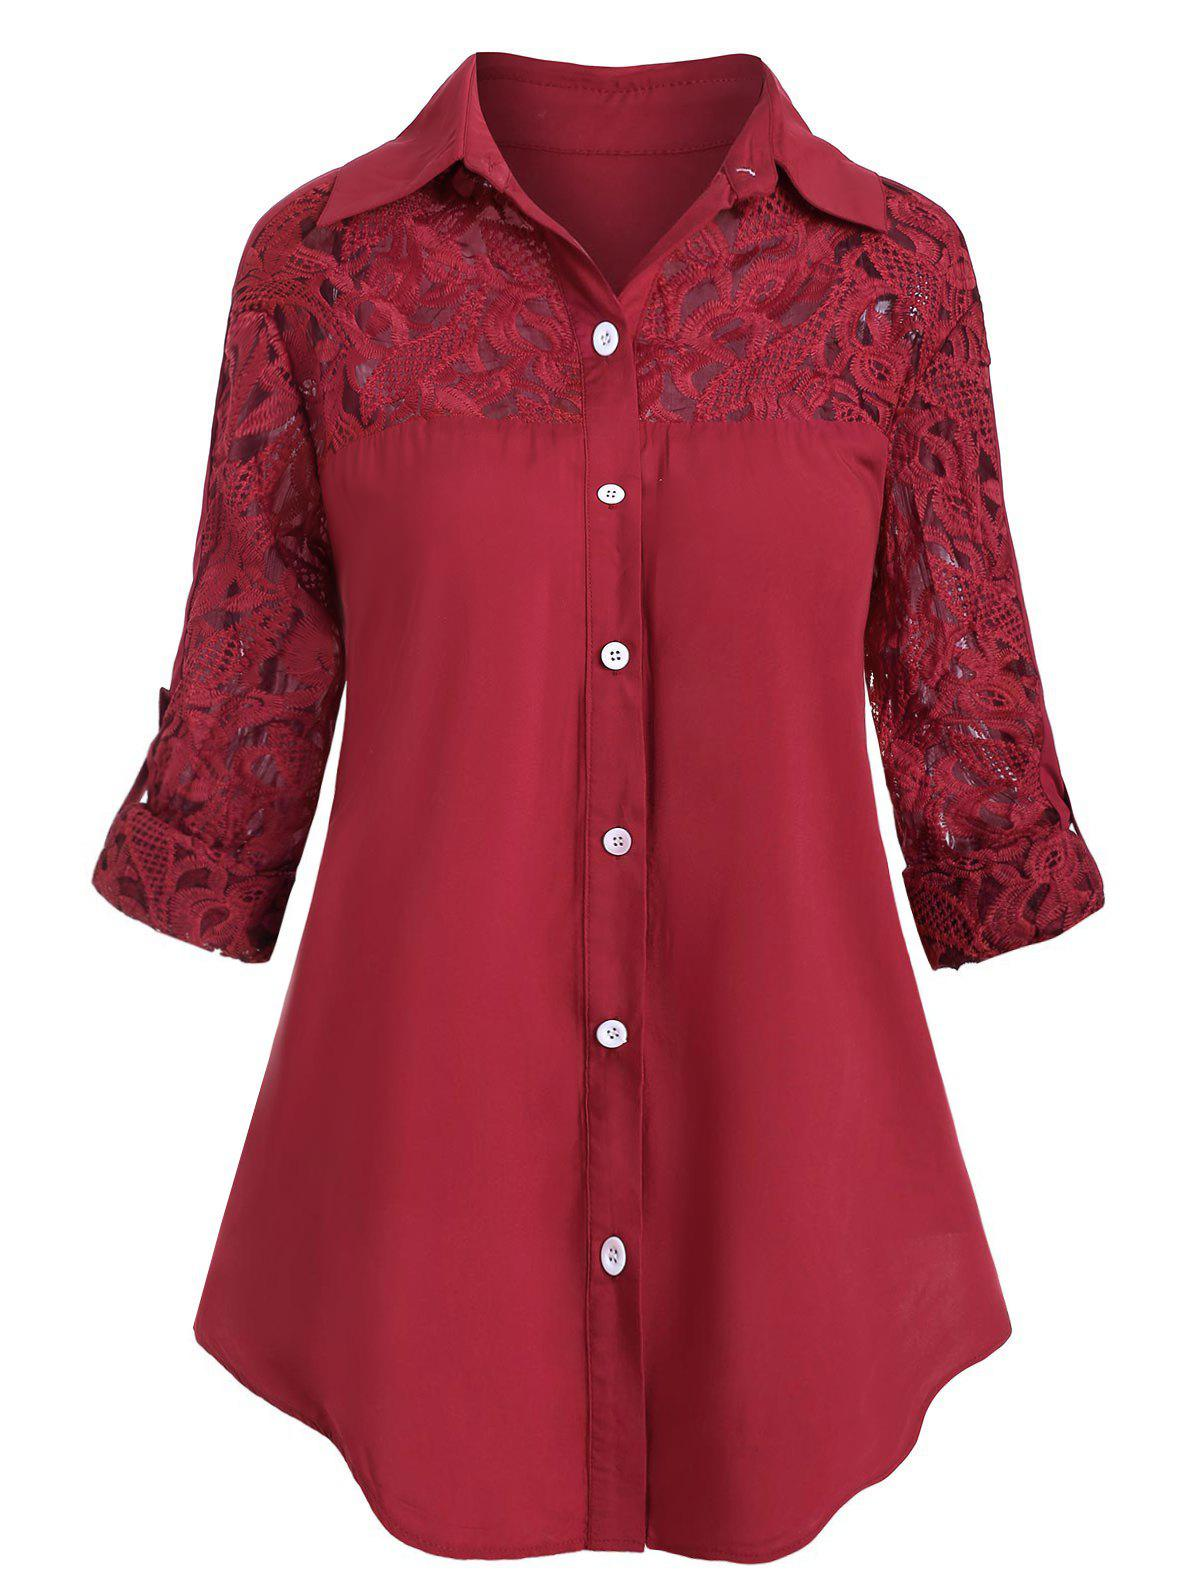 Plus Size Lace Insert Roll Up Sleeve Shirt - RED WINE 4X